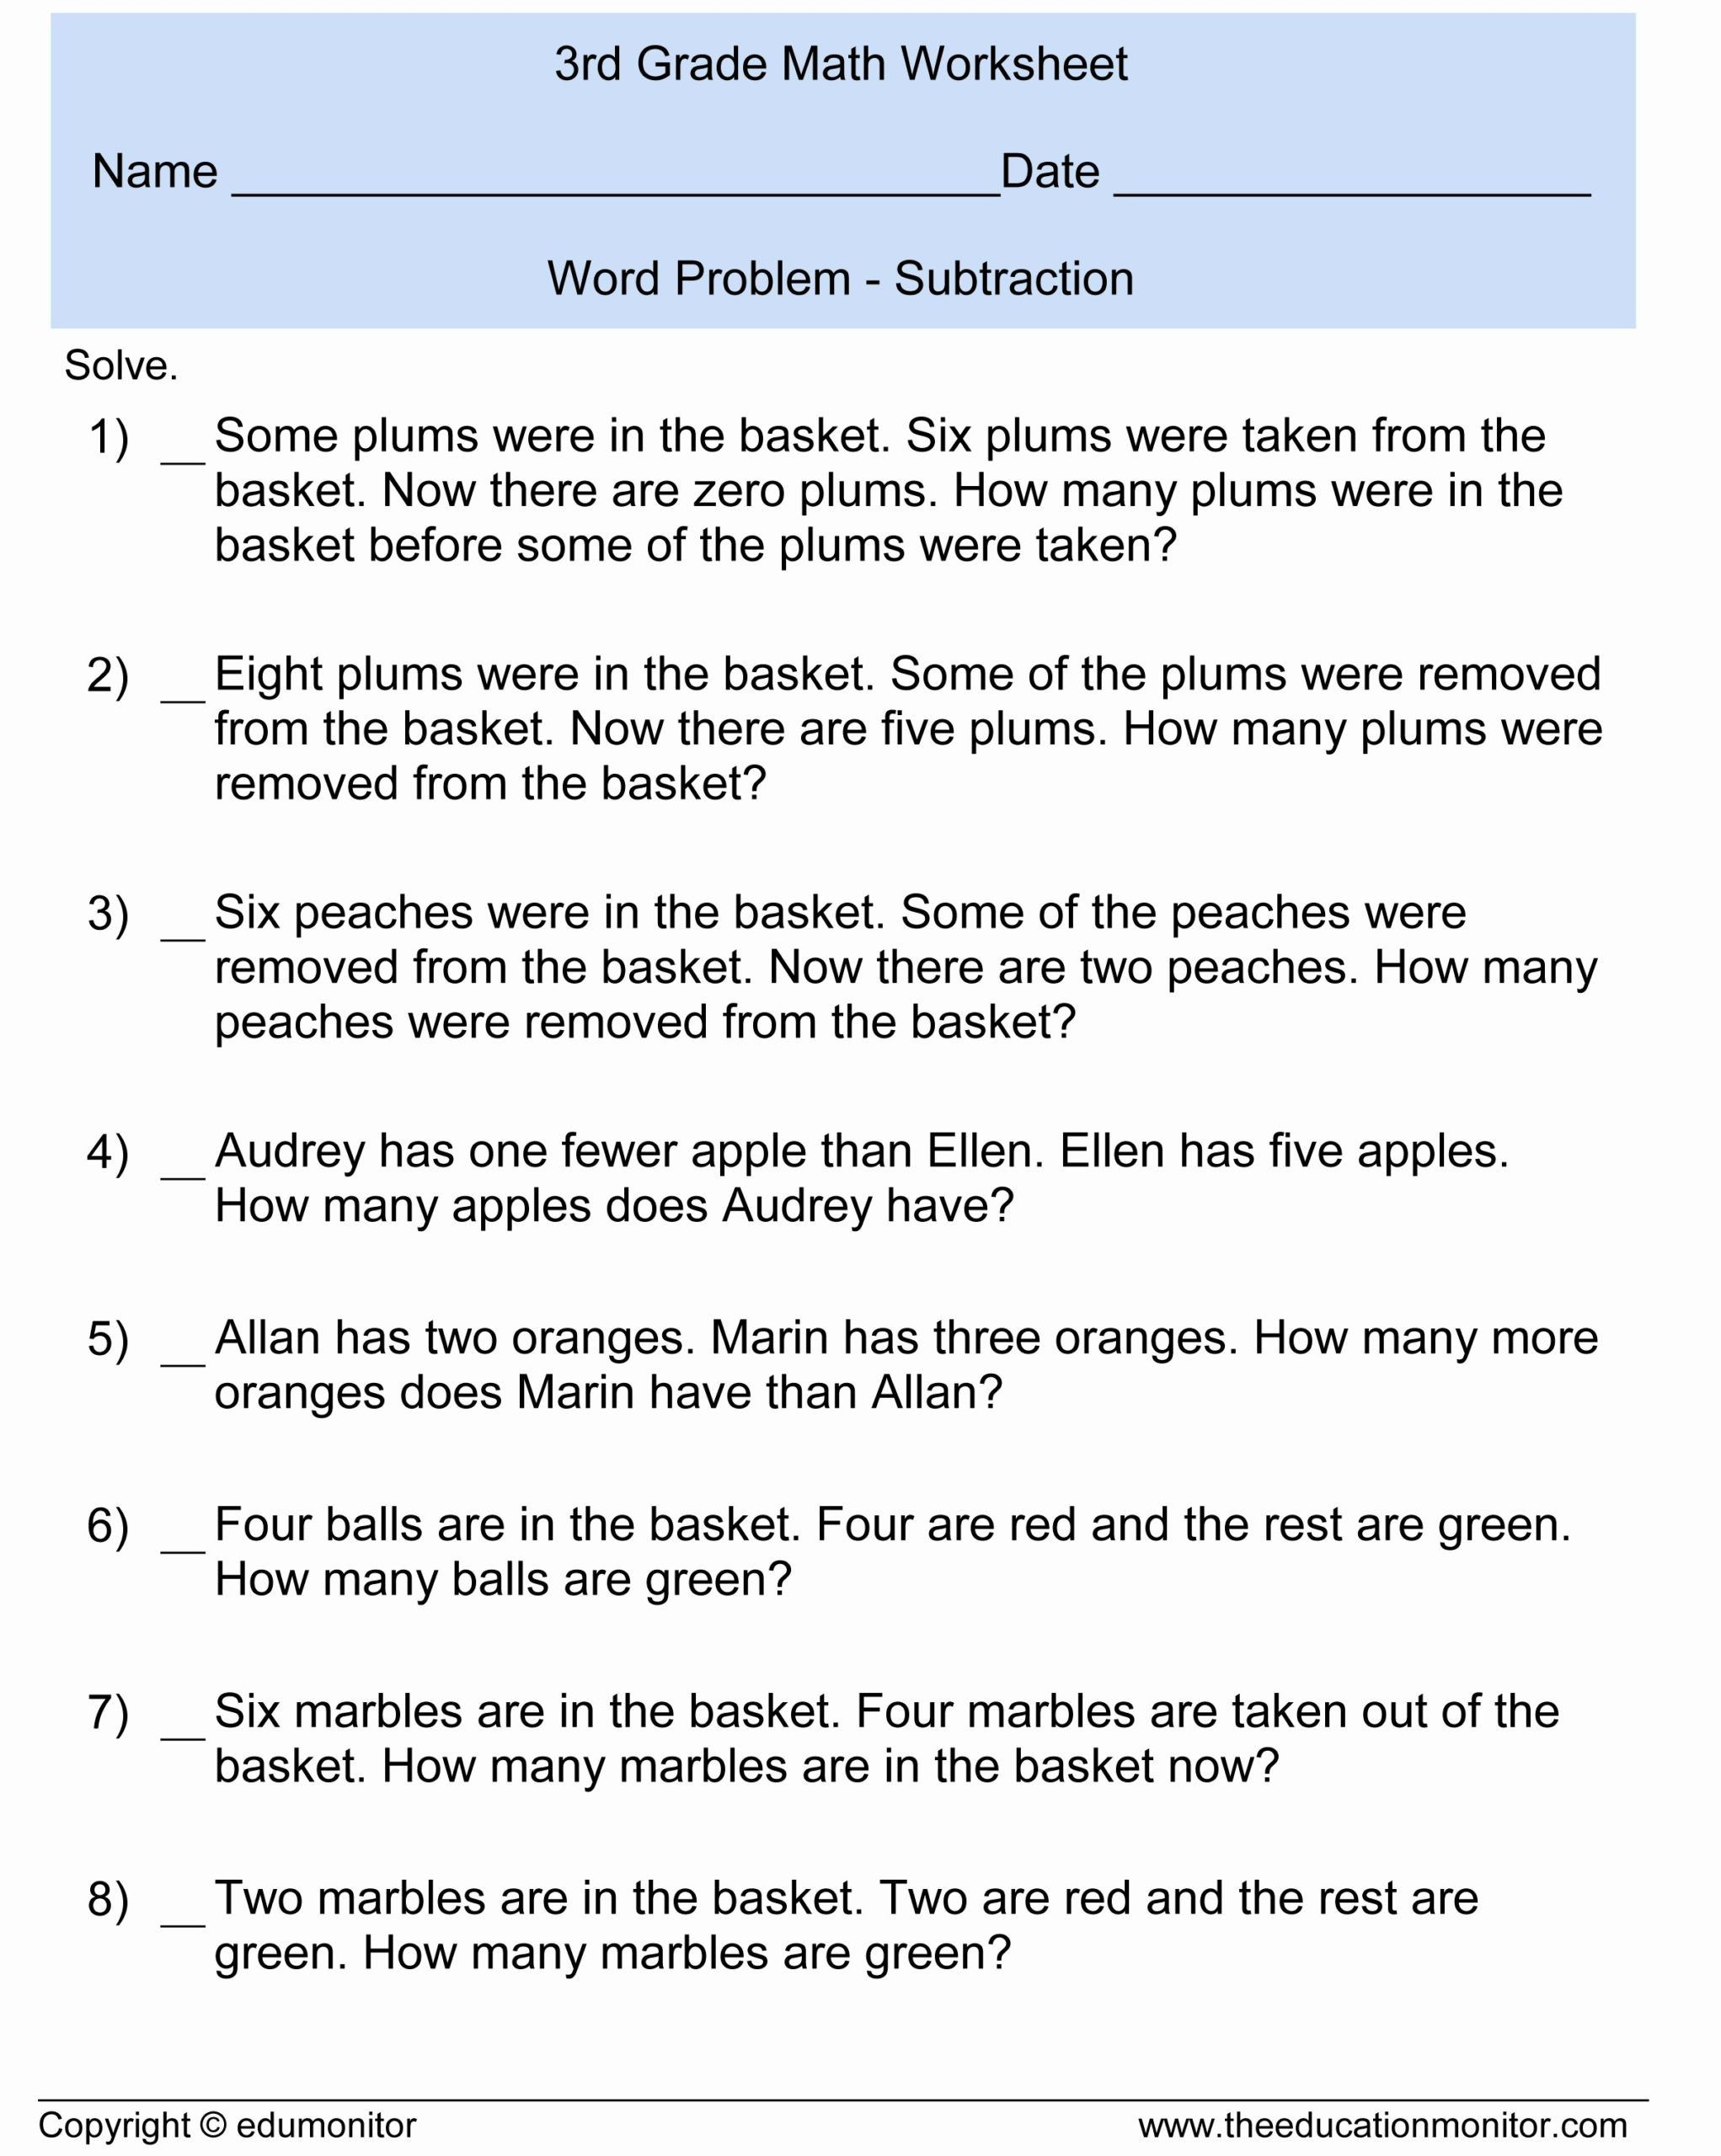 7 4th Grade Math Worksheets Word Problems In